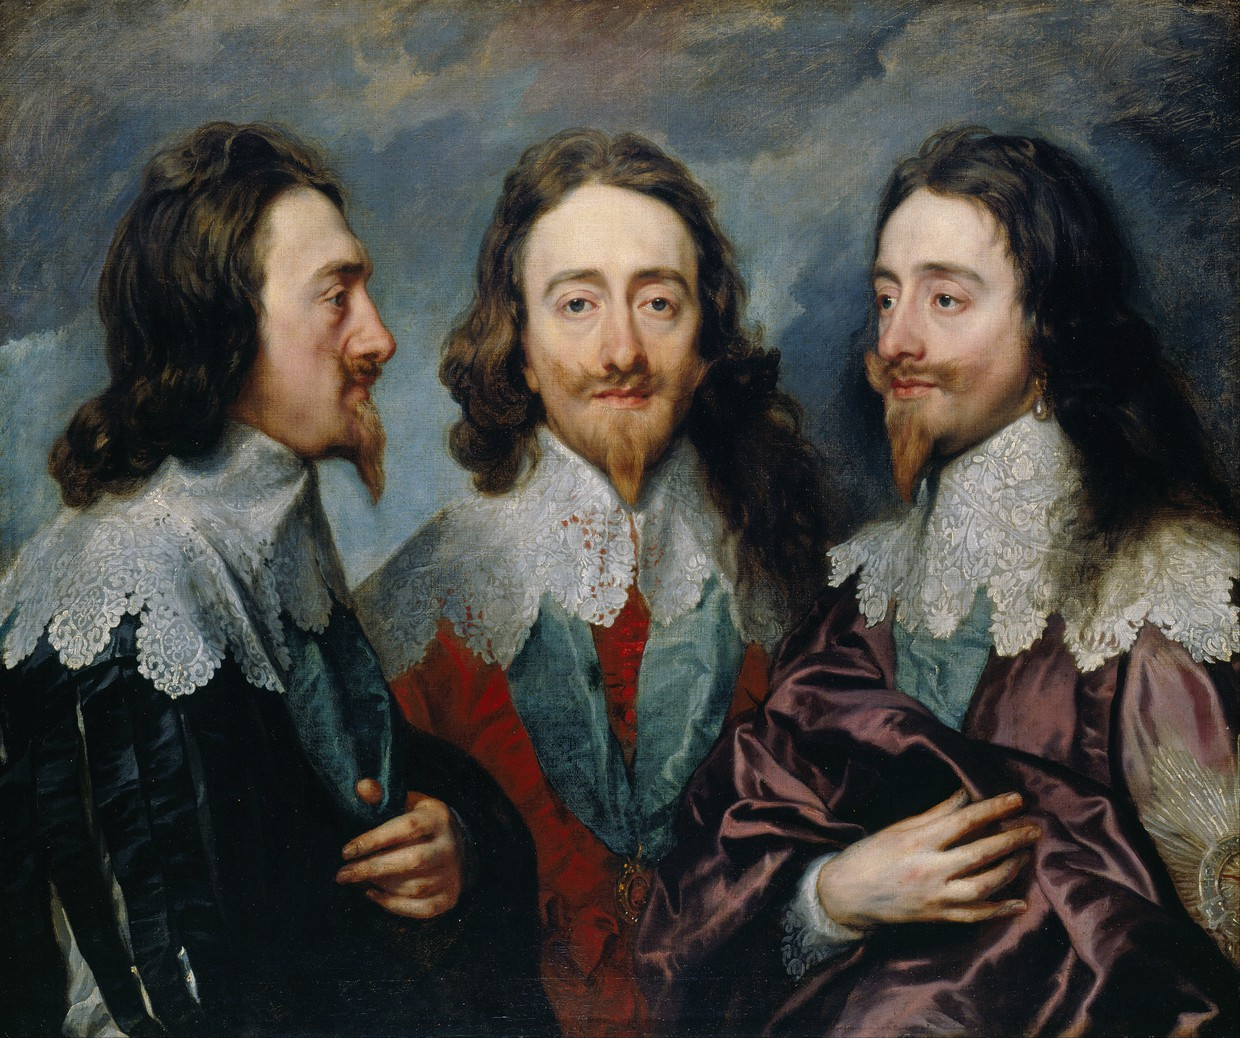 Anthony van Dyck: Charles I in Three Positions, (1635-1636), 85 x 100 cm, oil on canvas, Royal Collection